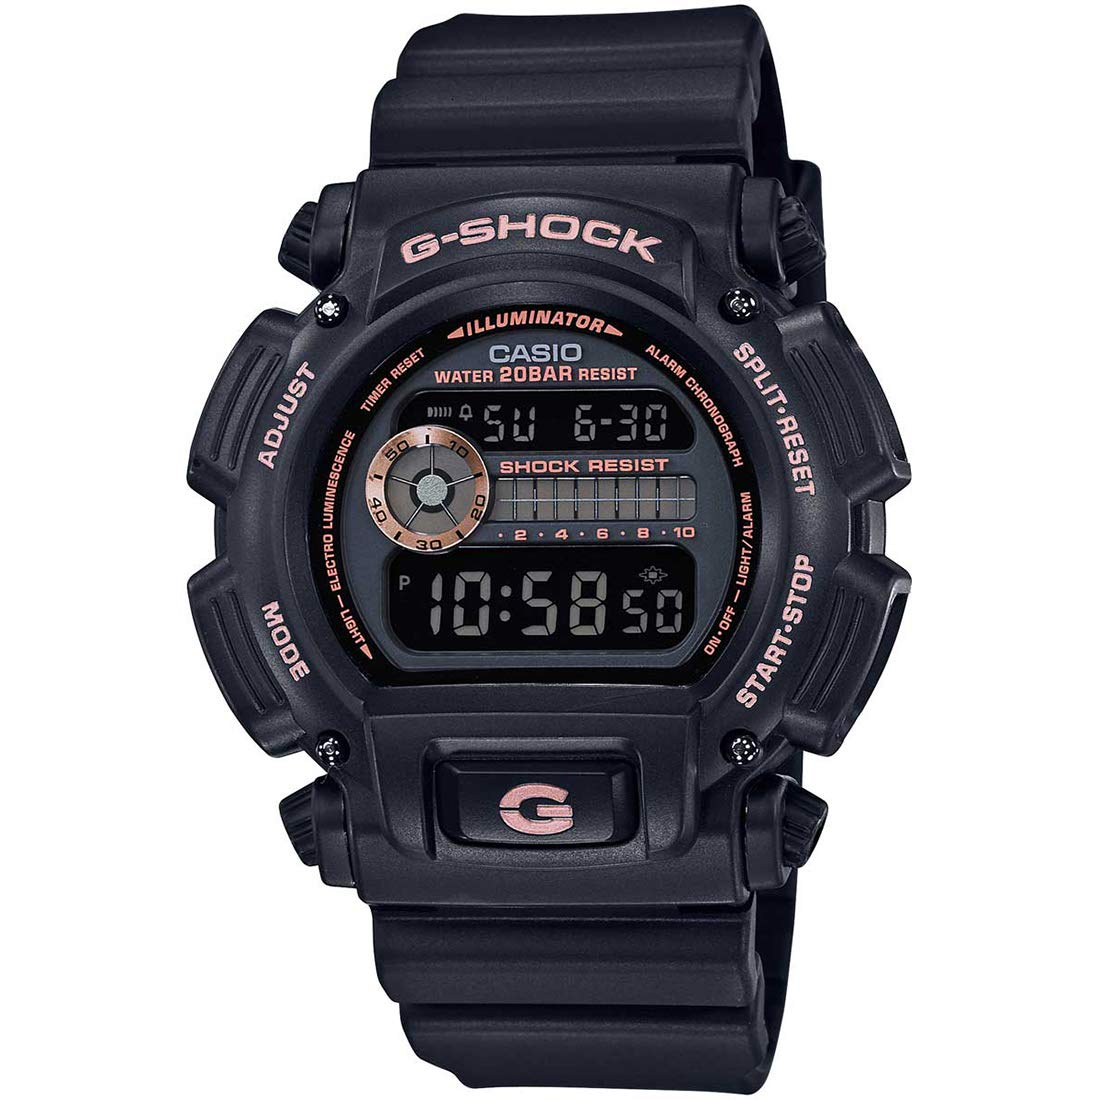 Casio Men's G-Shock DW9052GBX-1A4 Black Resin Quartz Diving Watch